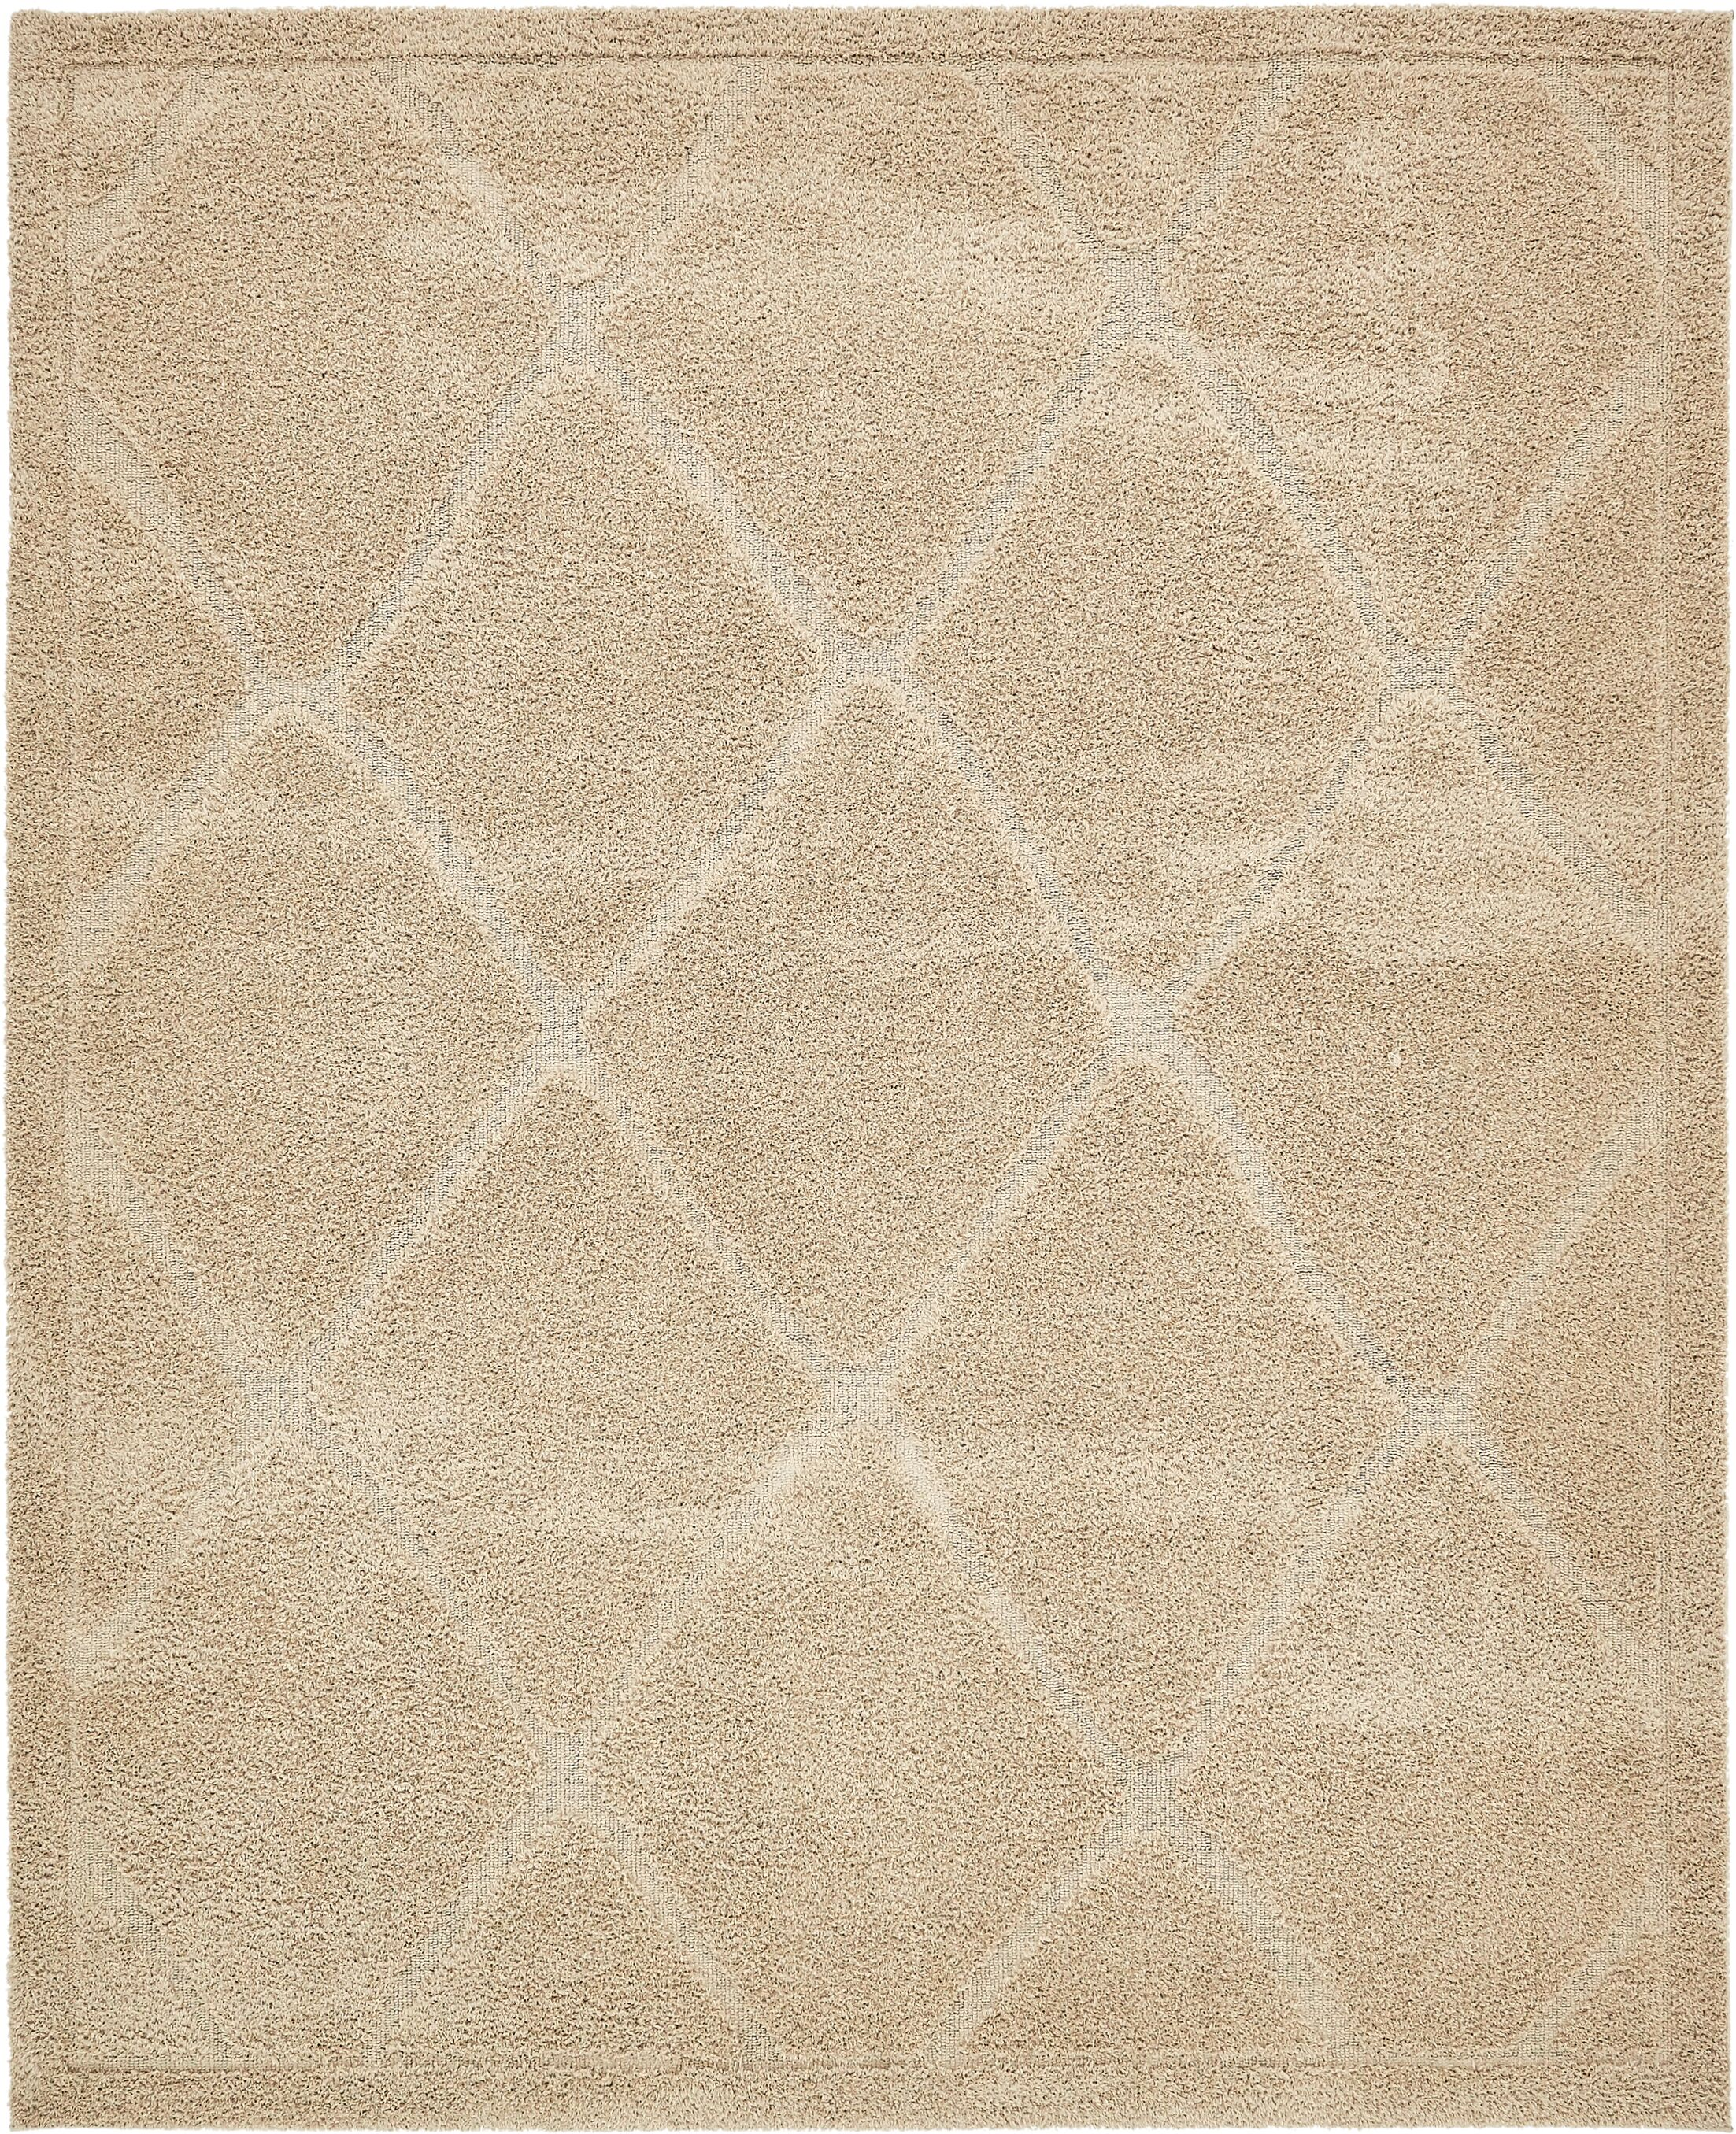 Chester Machine Woven Beige Area Rug Rug Size: Rectangle 8' x 10'